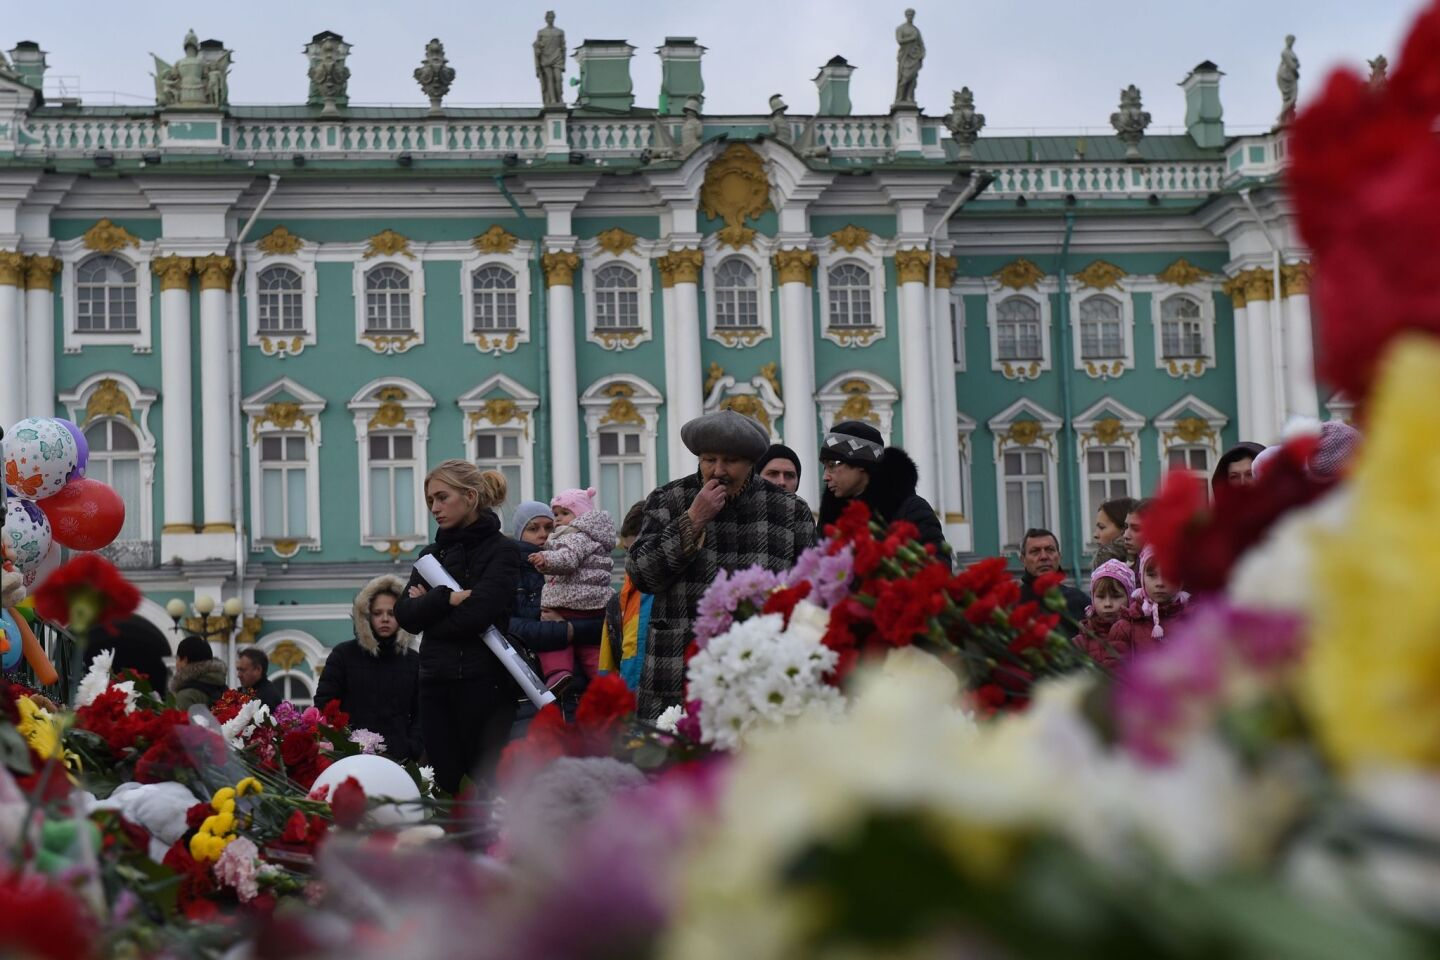 People stand in front of flowers at Dvortsovaya Square in central St. Petersburg in memory of the victims of a jetliner crash. Russian airline Kogalymavia's flight 9268 crashed en route from Sharm el-Sheikh to Saint Petersburg on October 31, killing all 224 people on board.